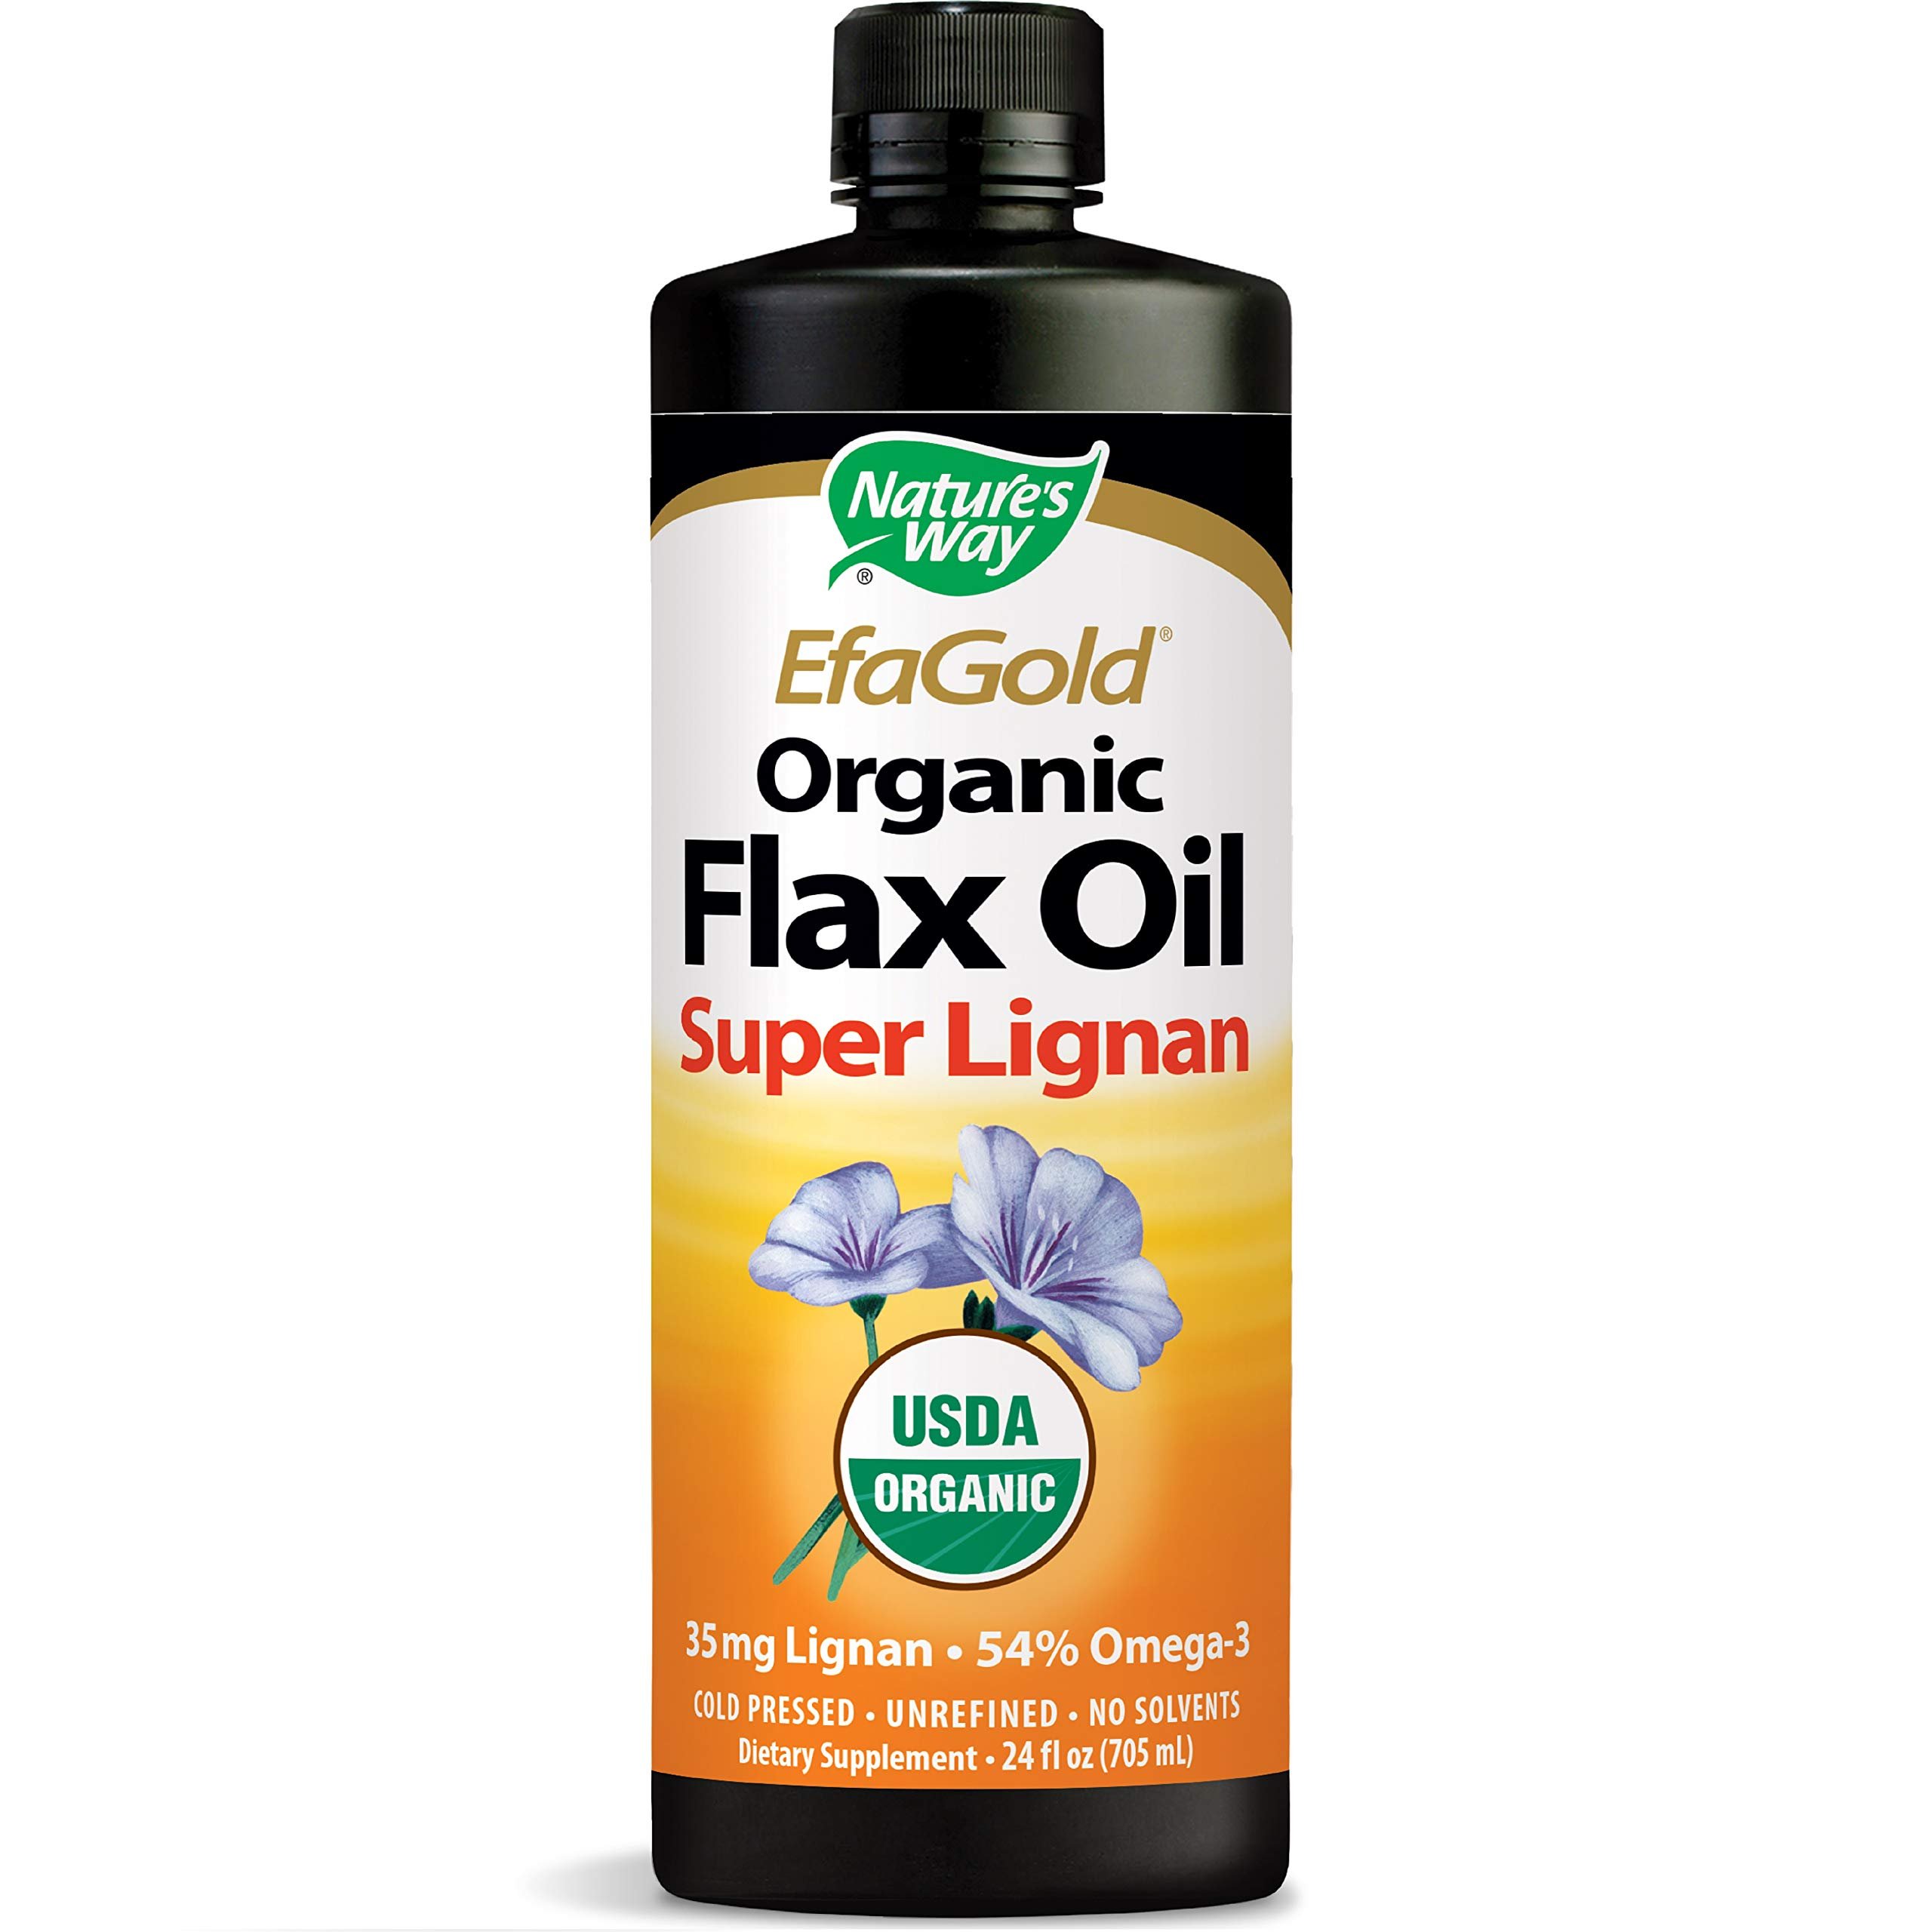 Nature's Way EfaGold Organic Flax Oil Super Lignan, 24 Ounce by Nature's Way